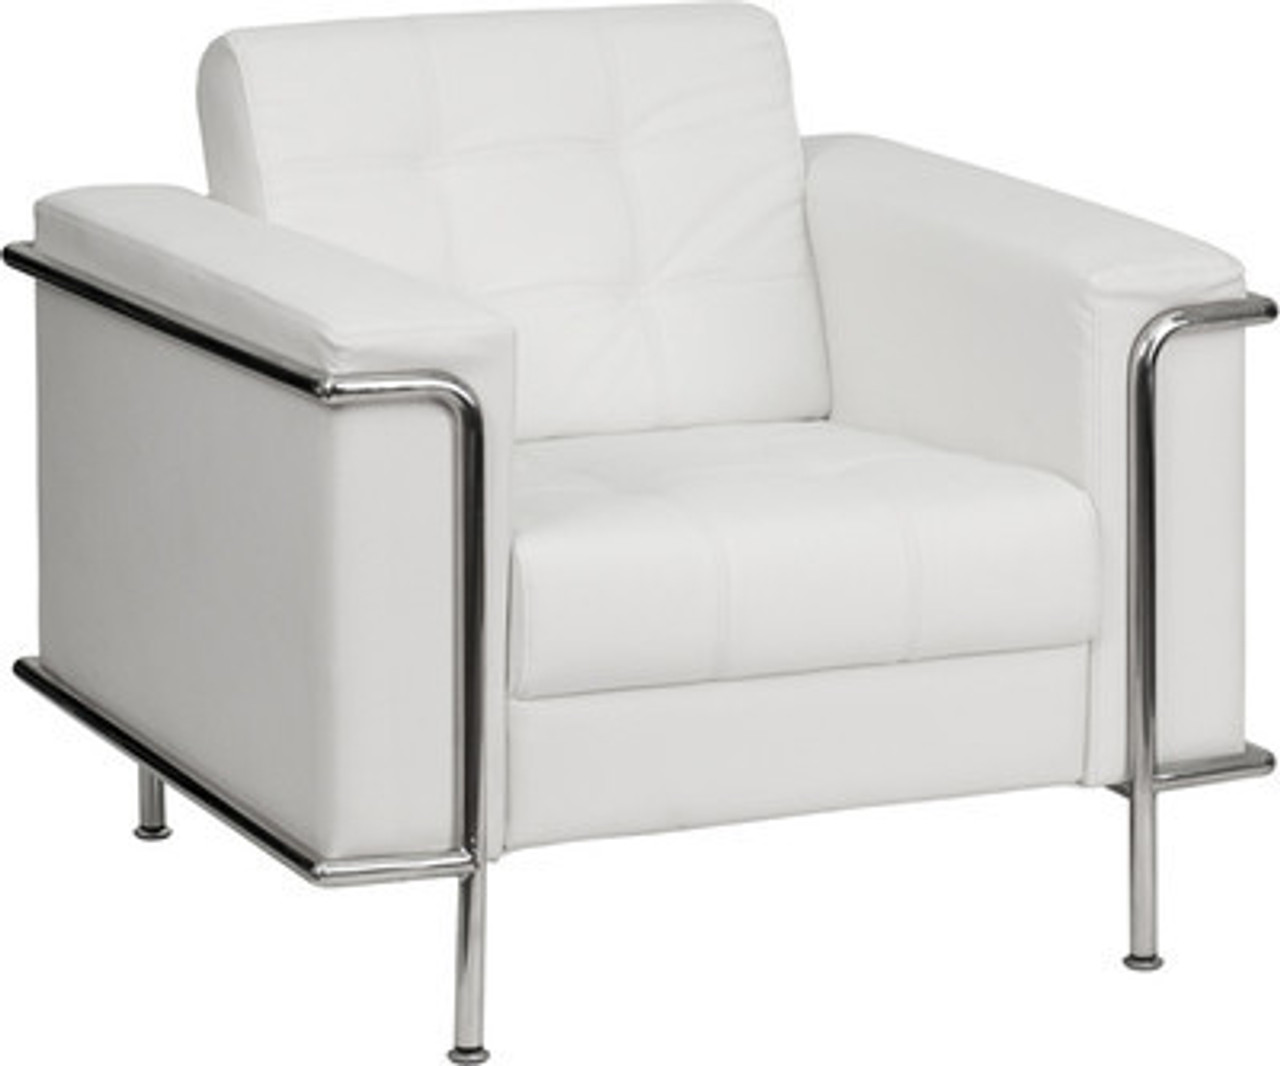 1pc Modern Leather Office Reception Sofa Chair, FF-0445-12